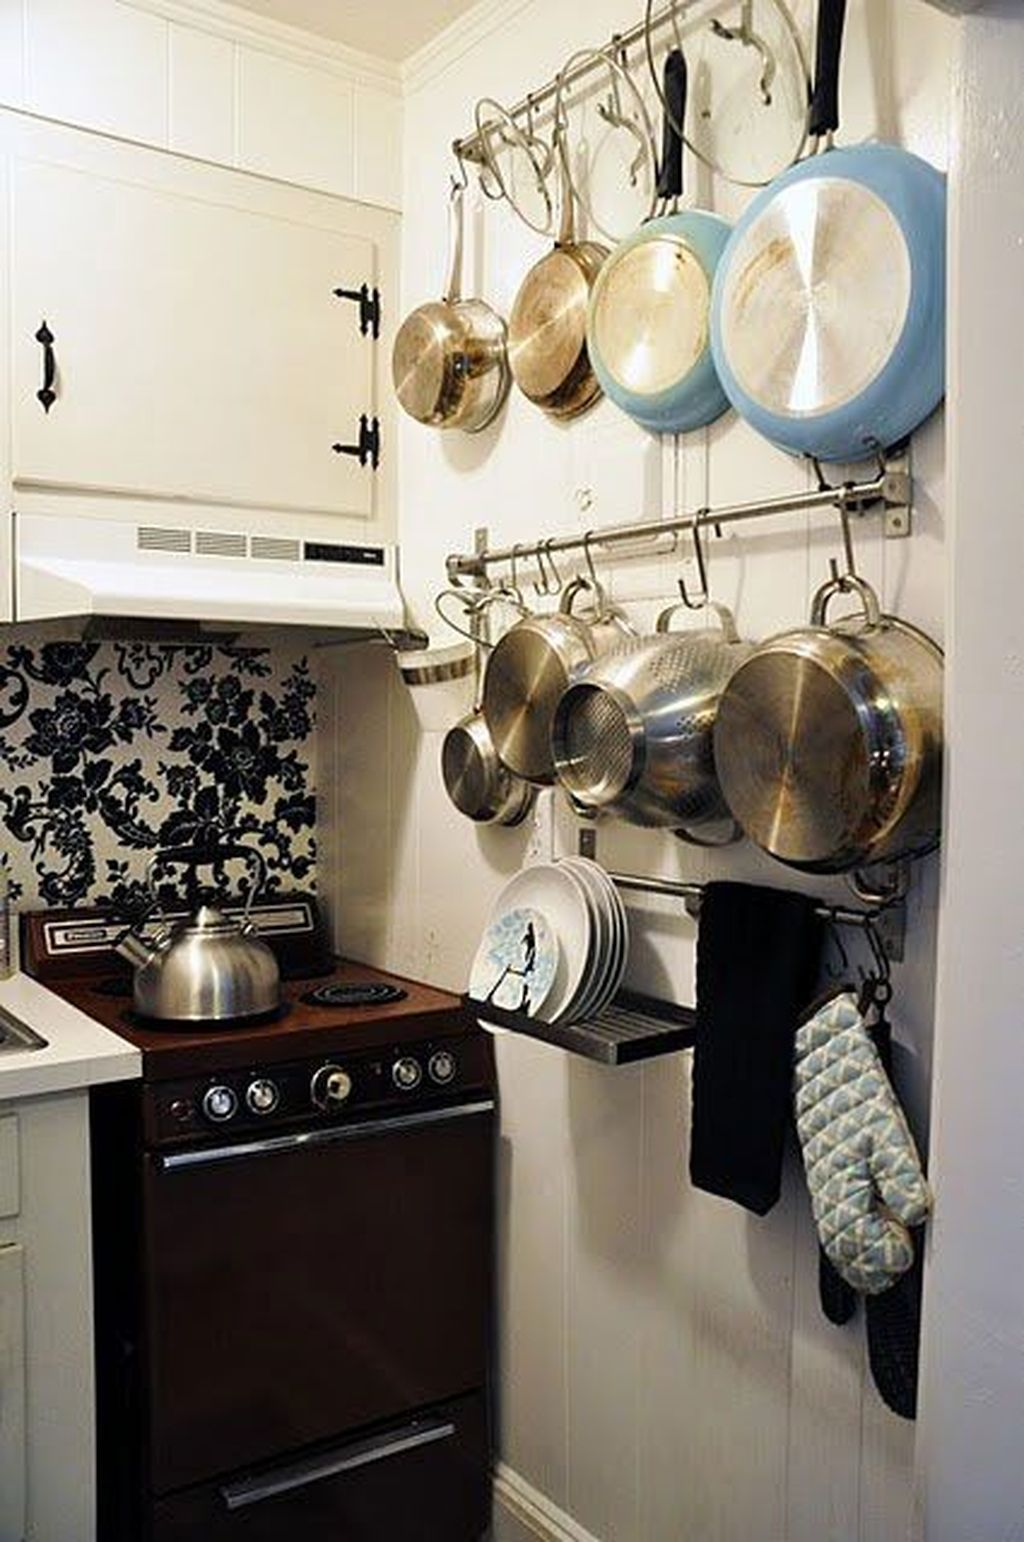 35 amazing small apartment kitchen ideas ideas para el hogar rh pinterest ca